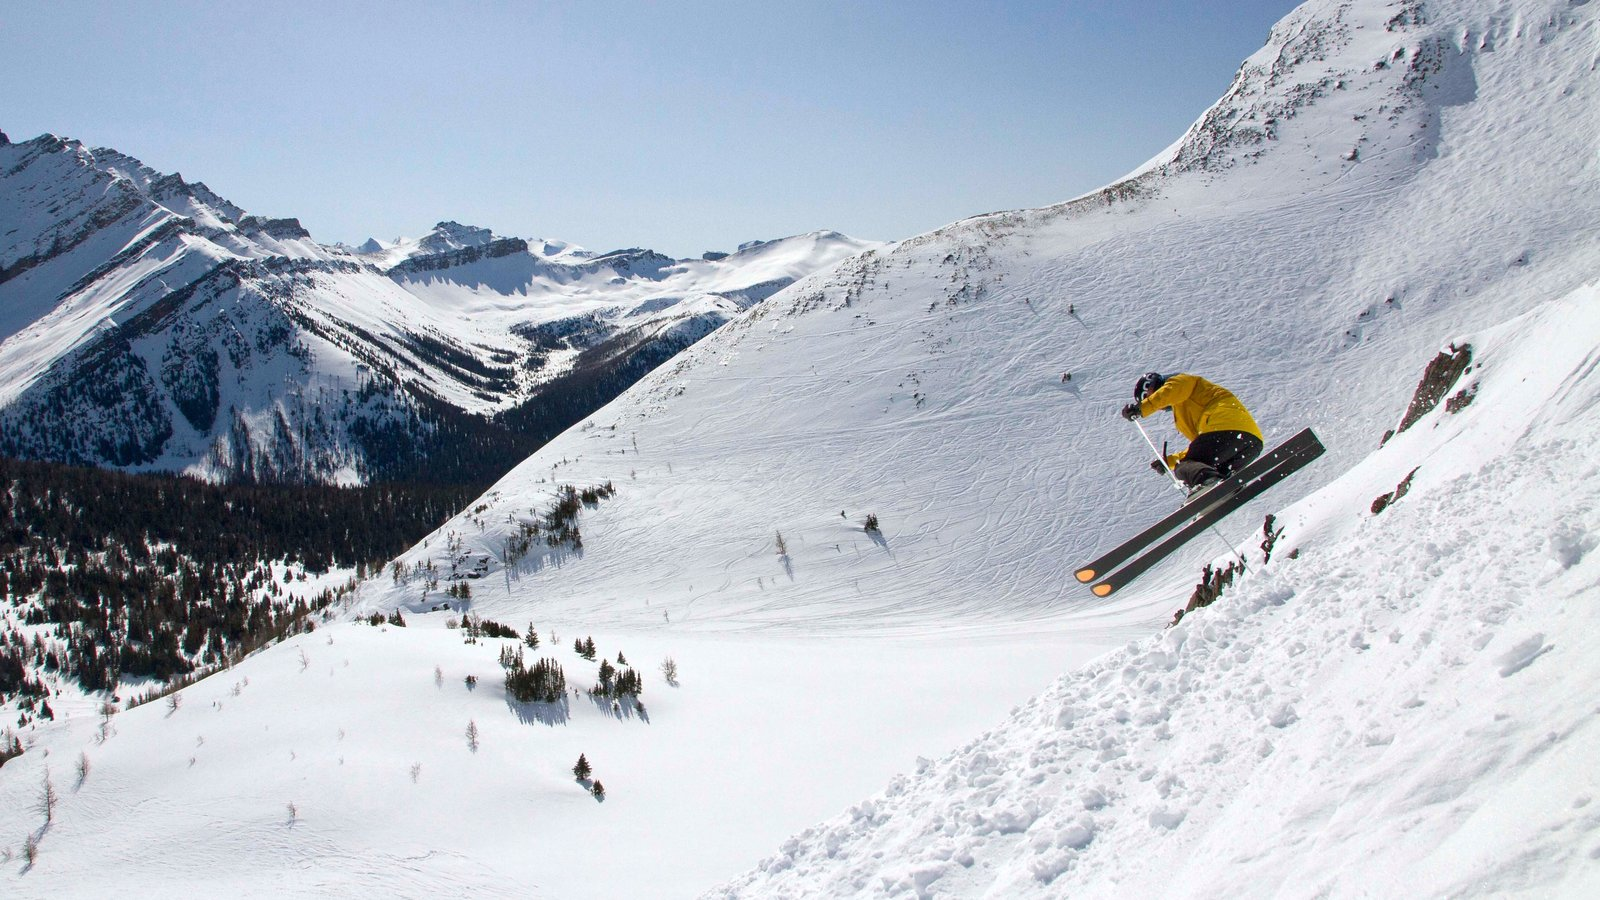 Lake Louise Mountain Resort featuring snow skiing, mountains and snow